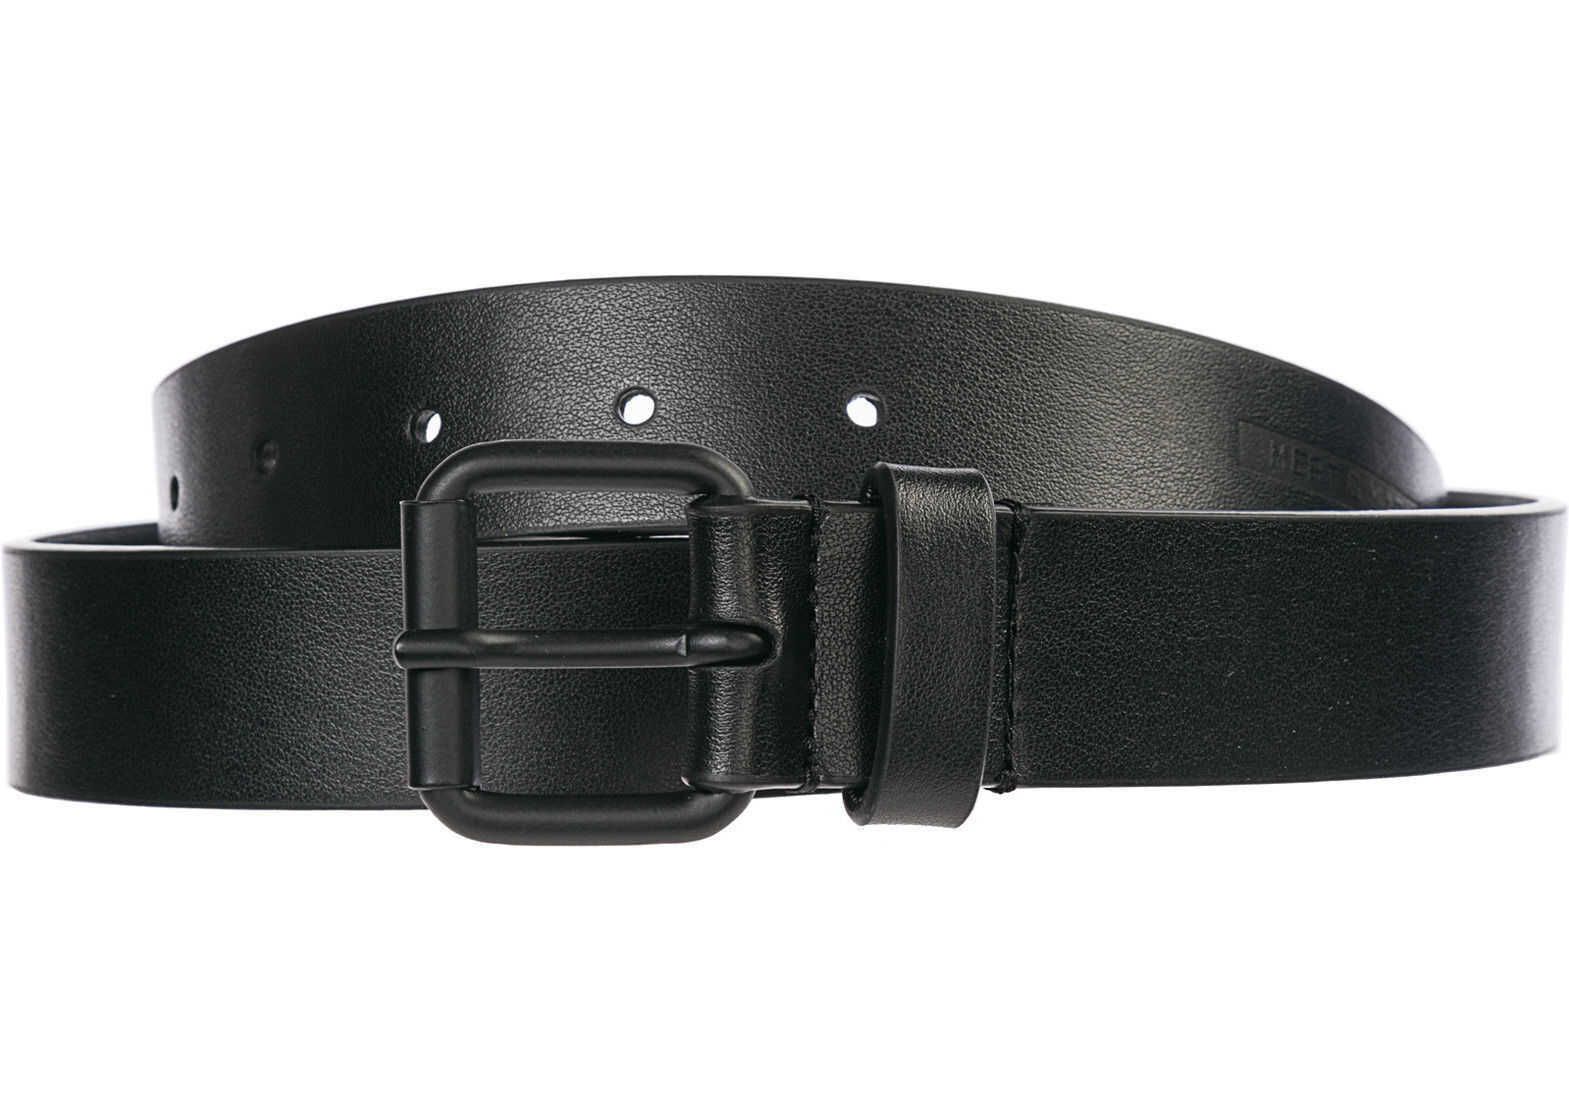 DSQUARED2 Genuine Leather Belt Mert & Marcus Black